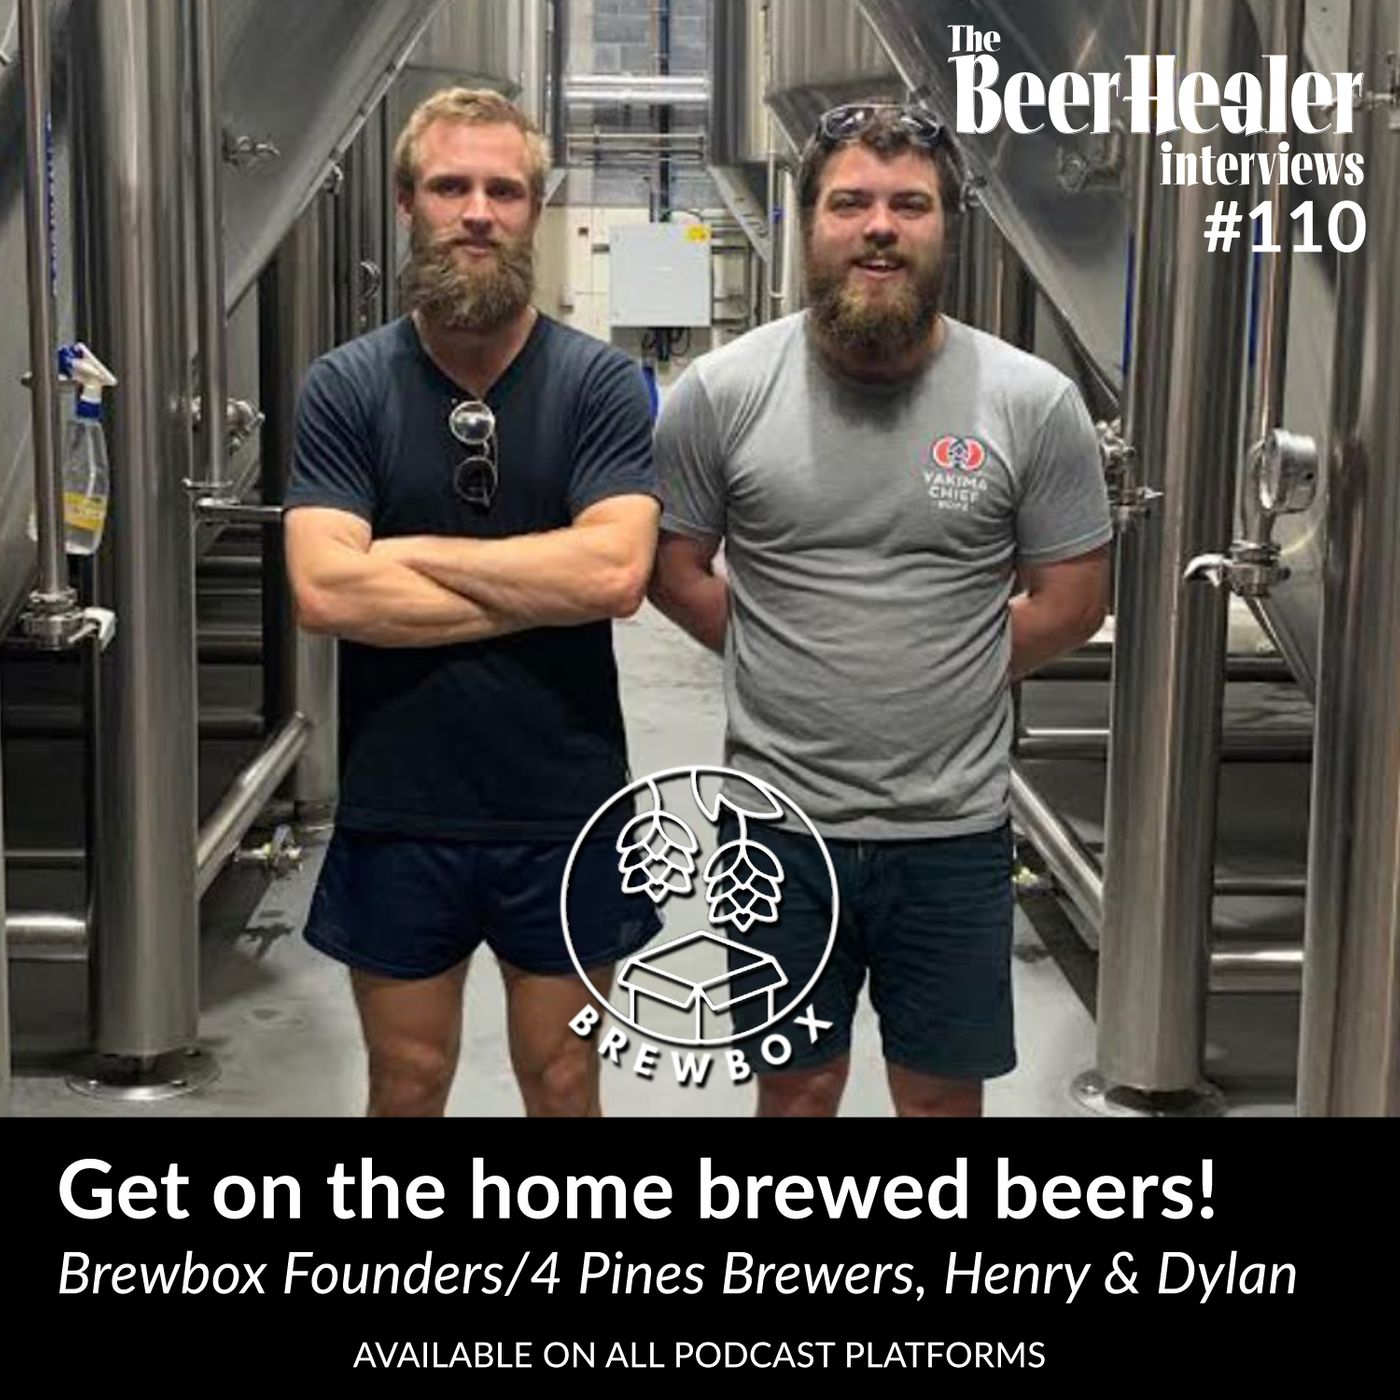 Ep. 110 - Get on the home brewed beers. Paying it forward with Brewbox Co-Founders and 4 Pine Pro-Brewers, Dylan Kelly & Henry Tier.